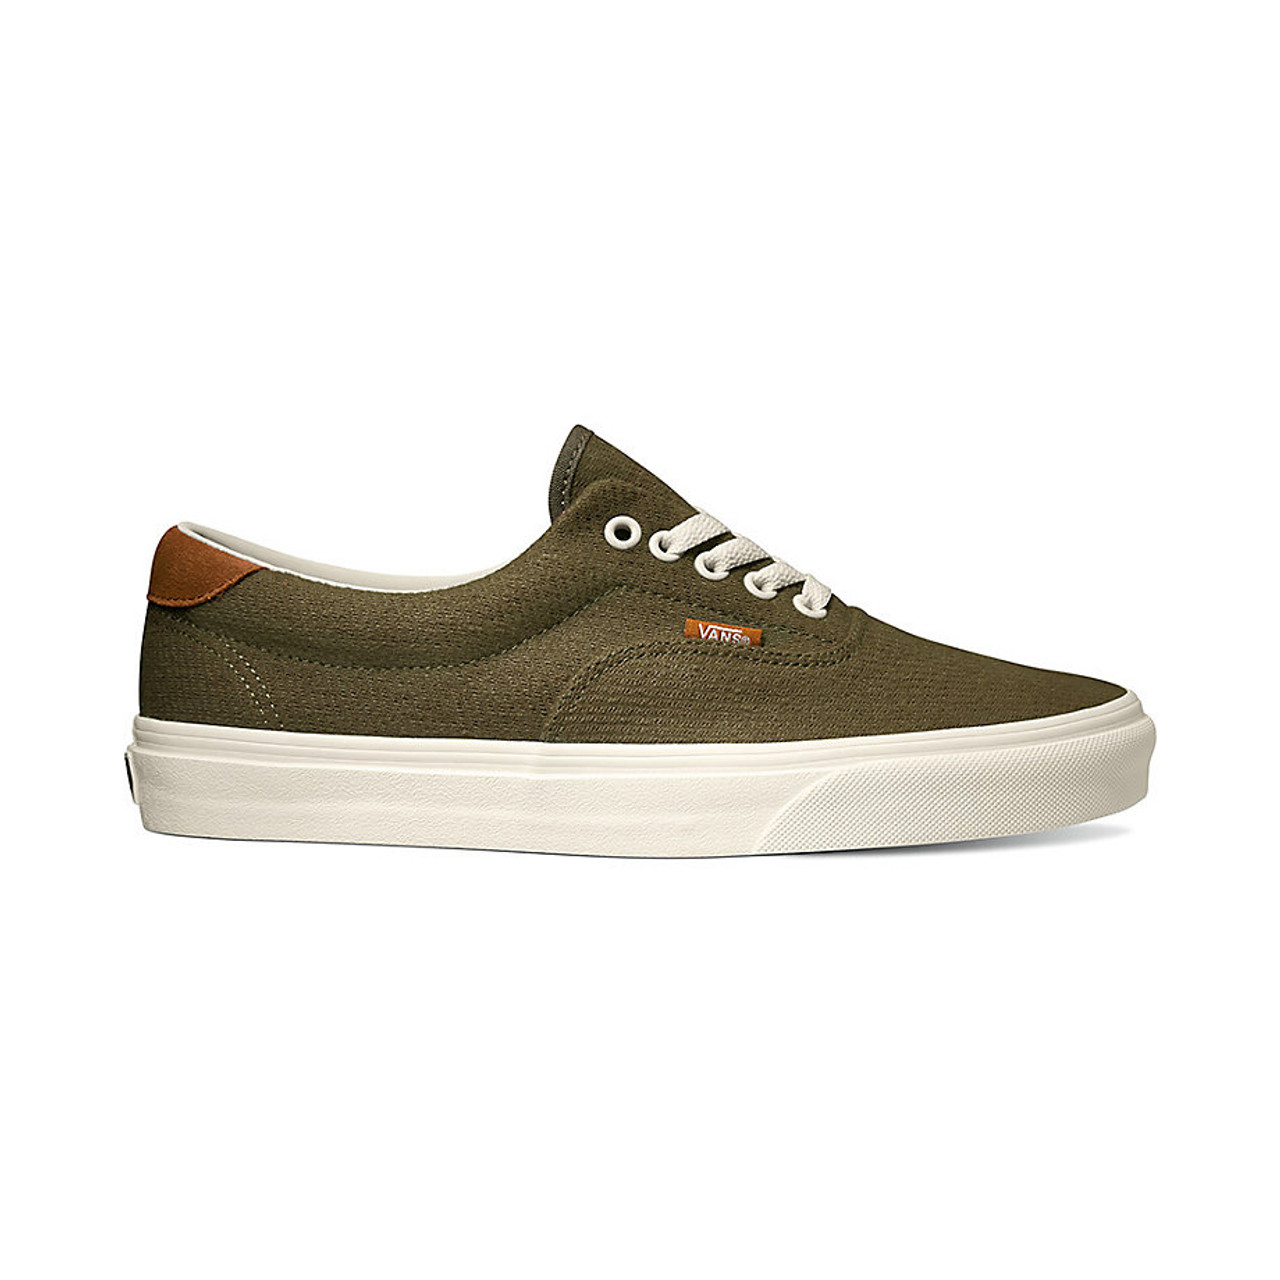 a4beb409d1 Vans Shoes - Era 59 - Flannel Dusty Olive - Surf and Dirt